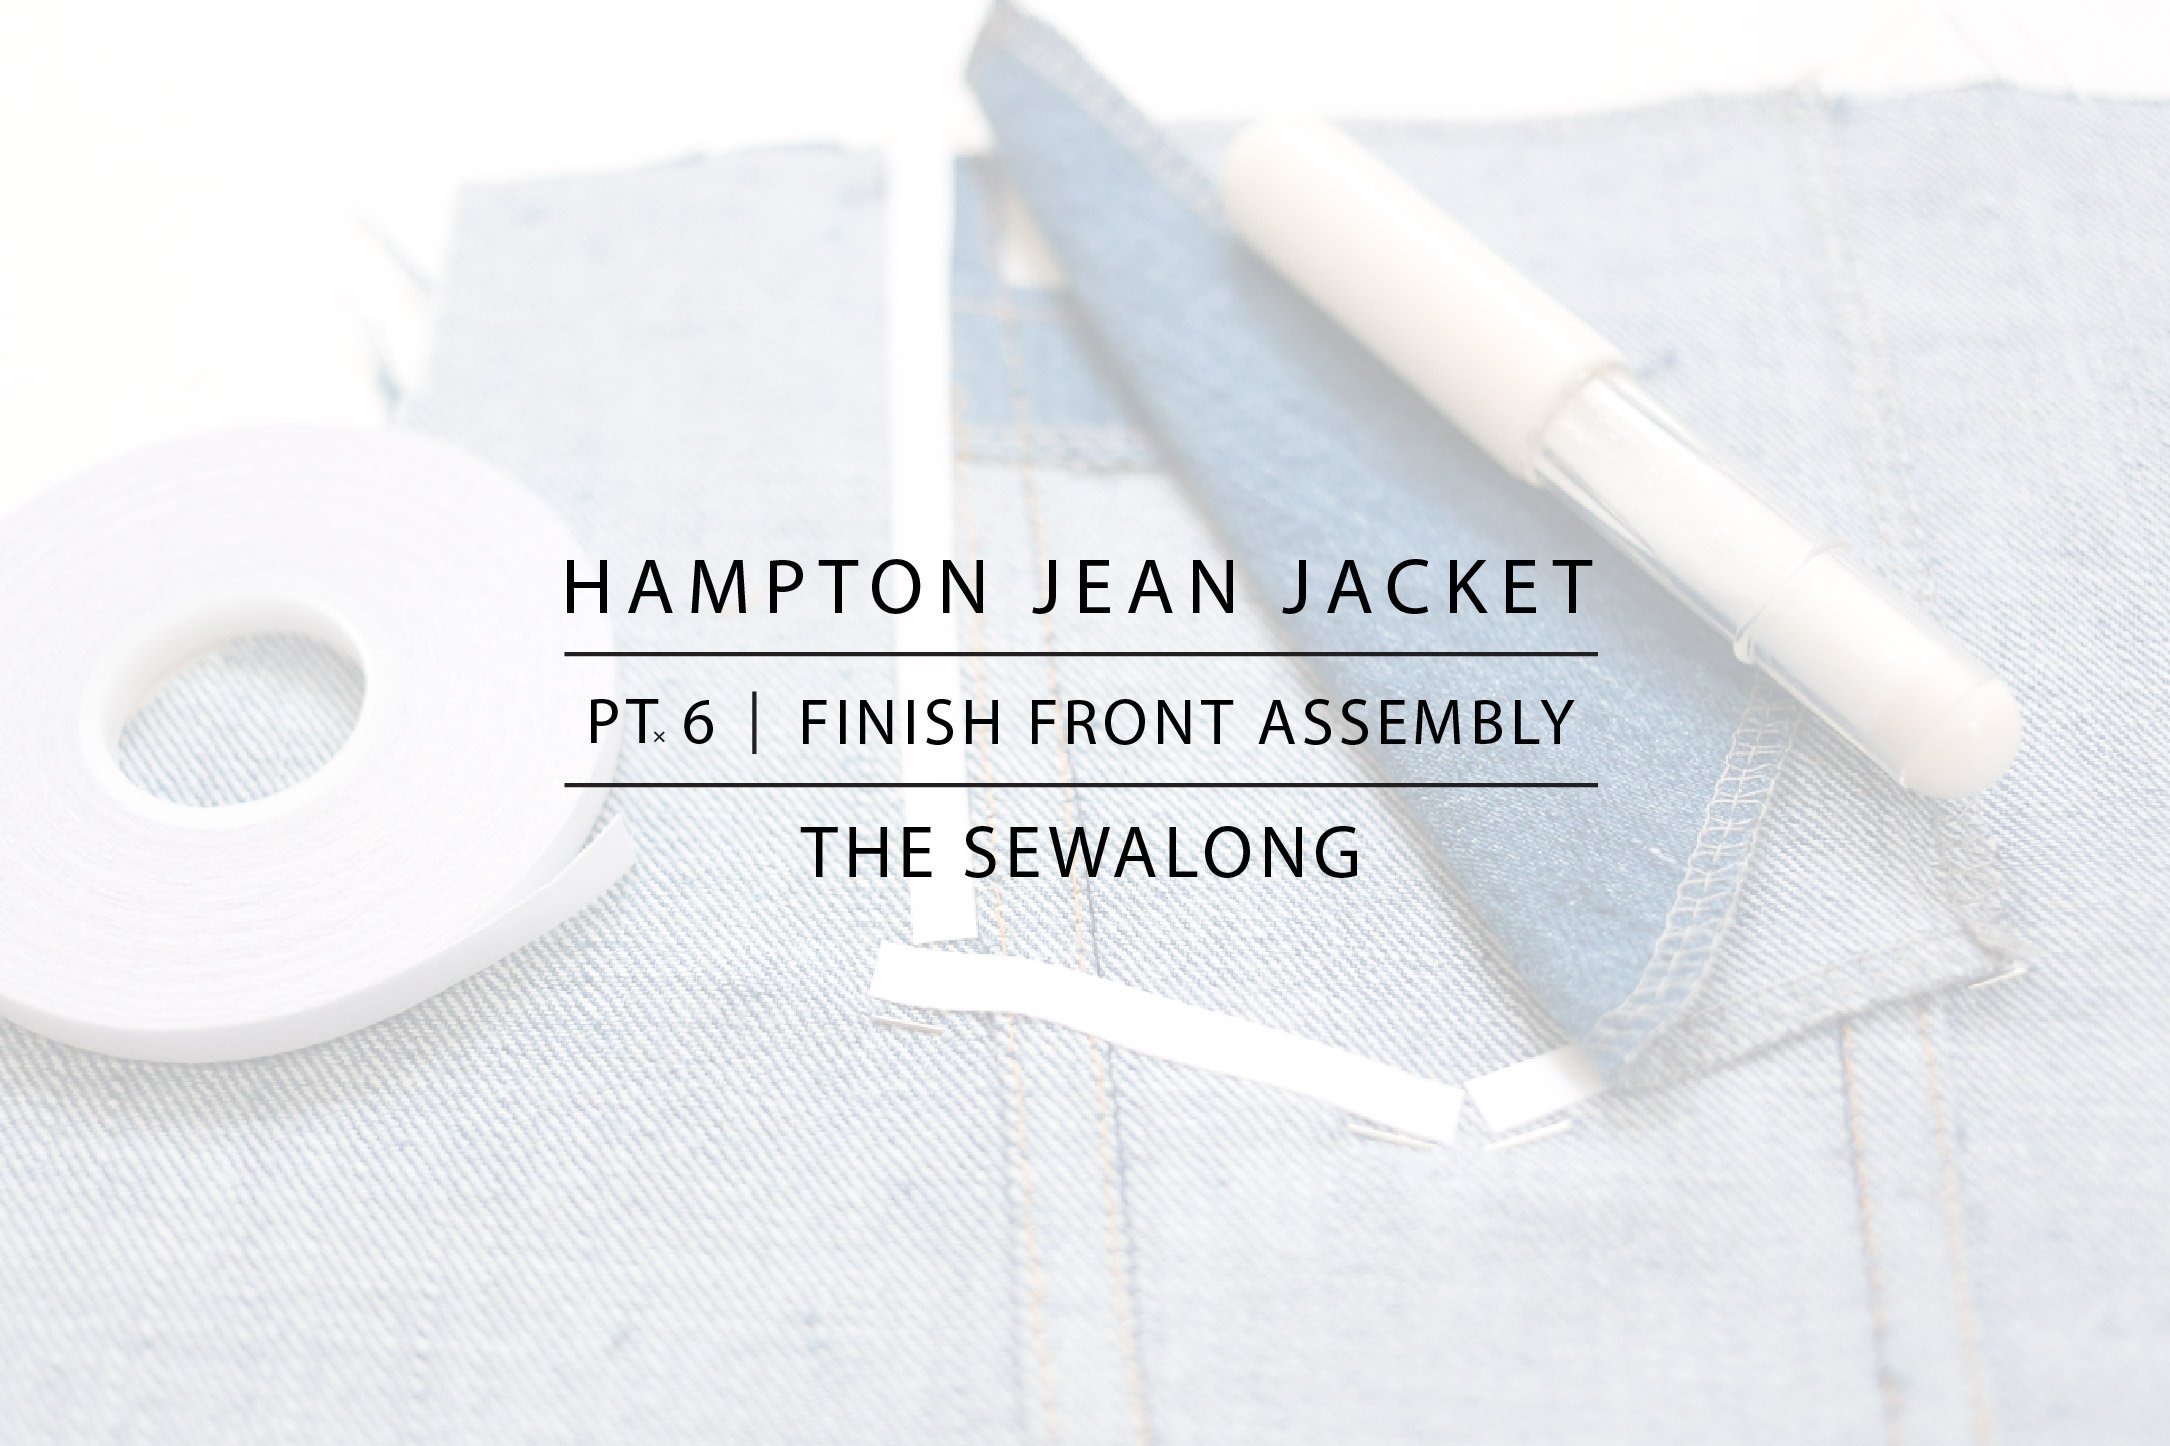 Hampton Jean Jacket Sewalong Pt. 6